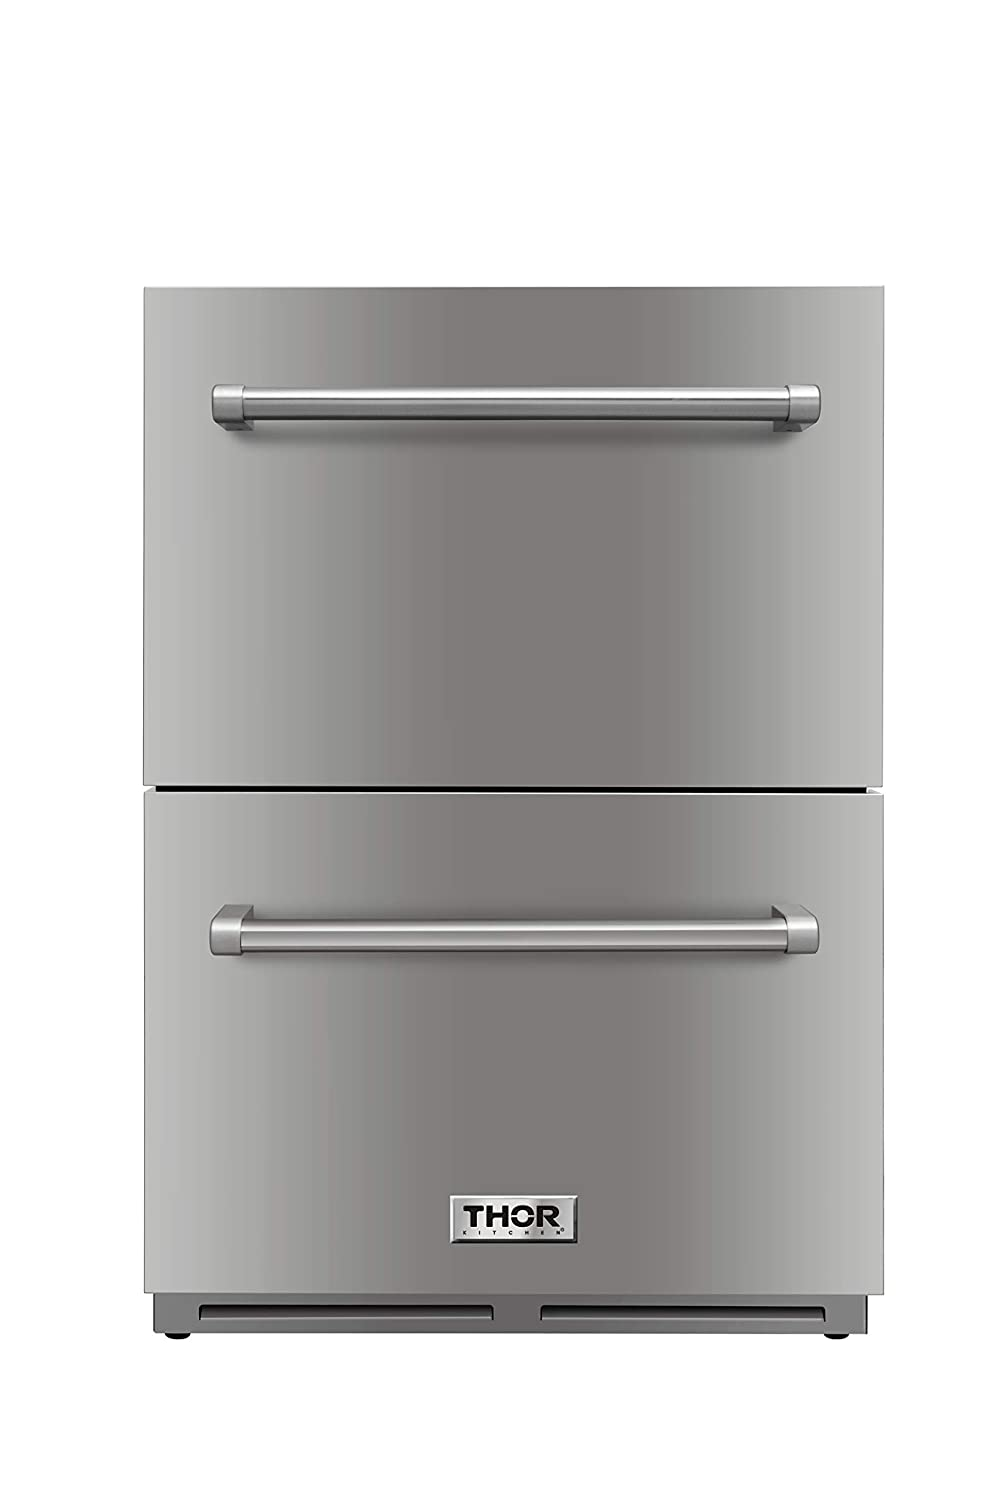 Thor Kitchen 5.3cu.ft Built-in Compact Refrigerator Ventilated Cooling Under Counter Mini Fridge - Stainless Steel - 1 Years Warranty